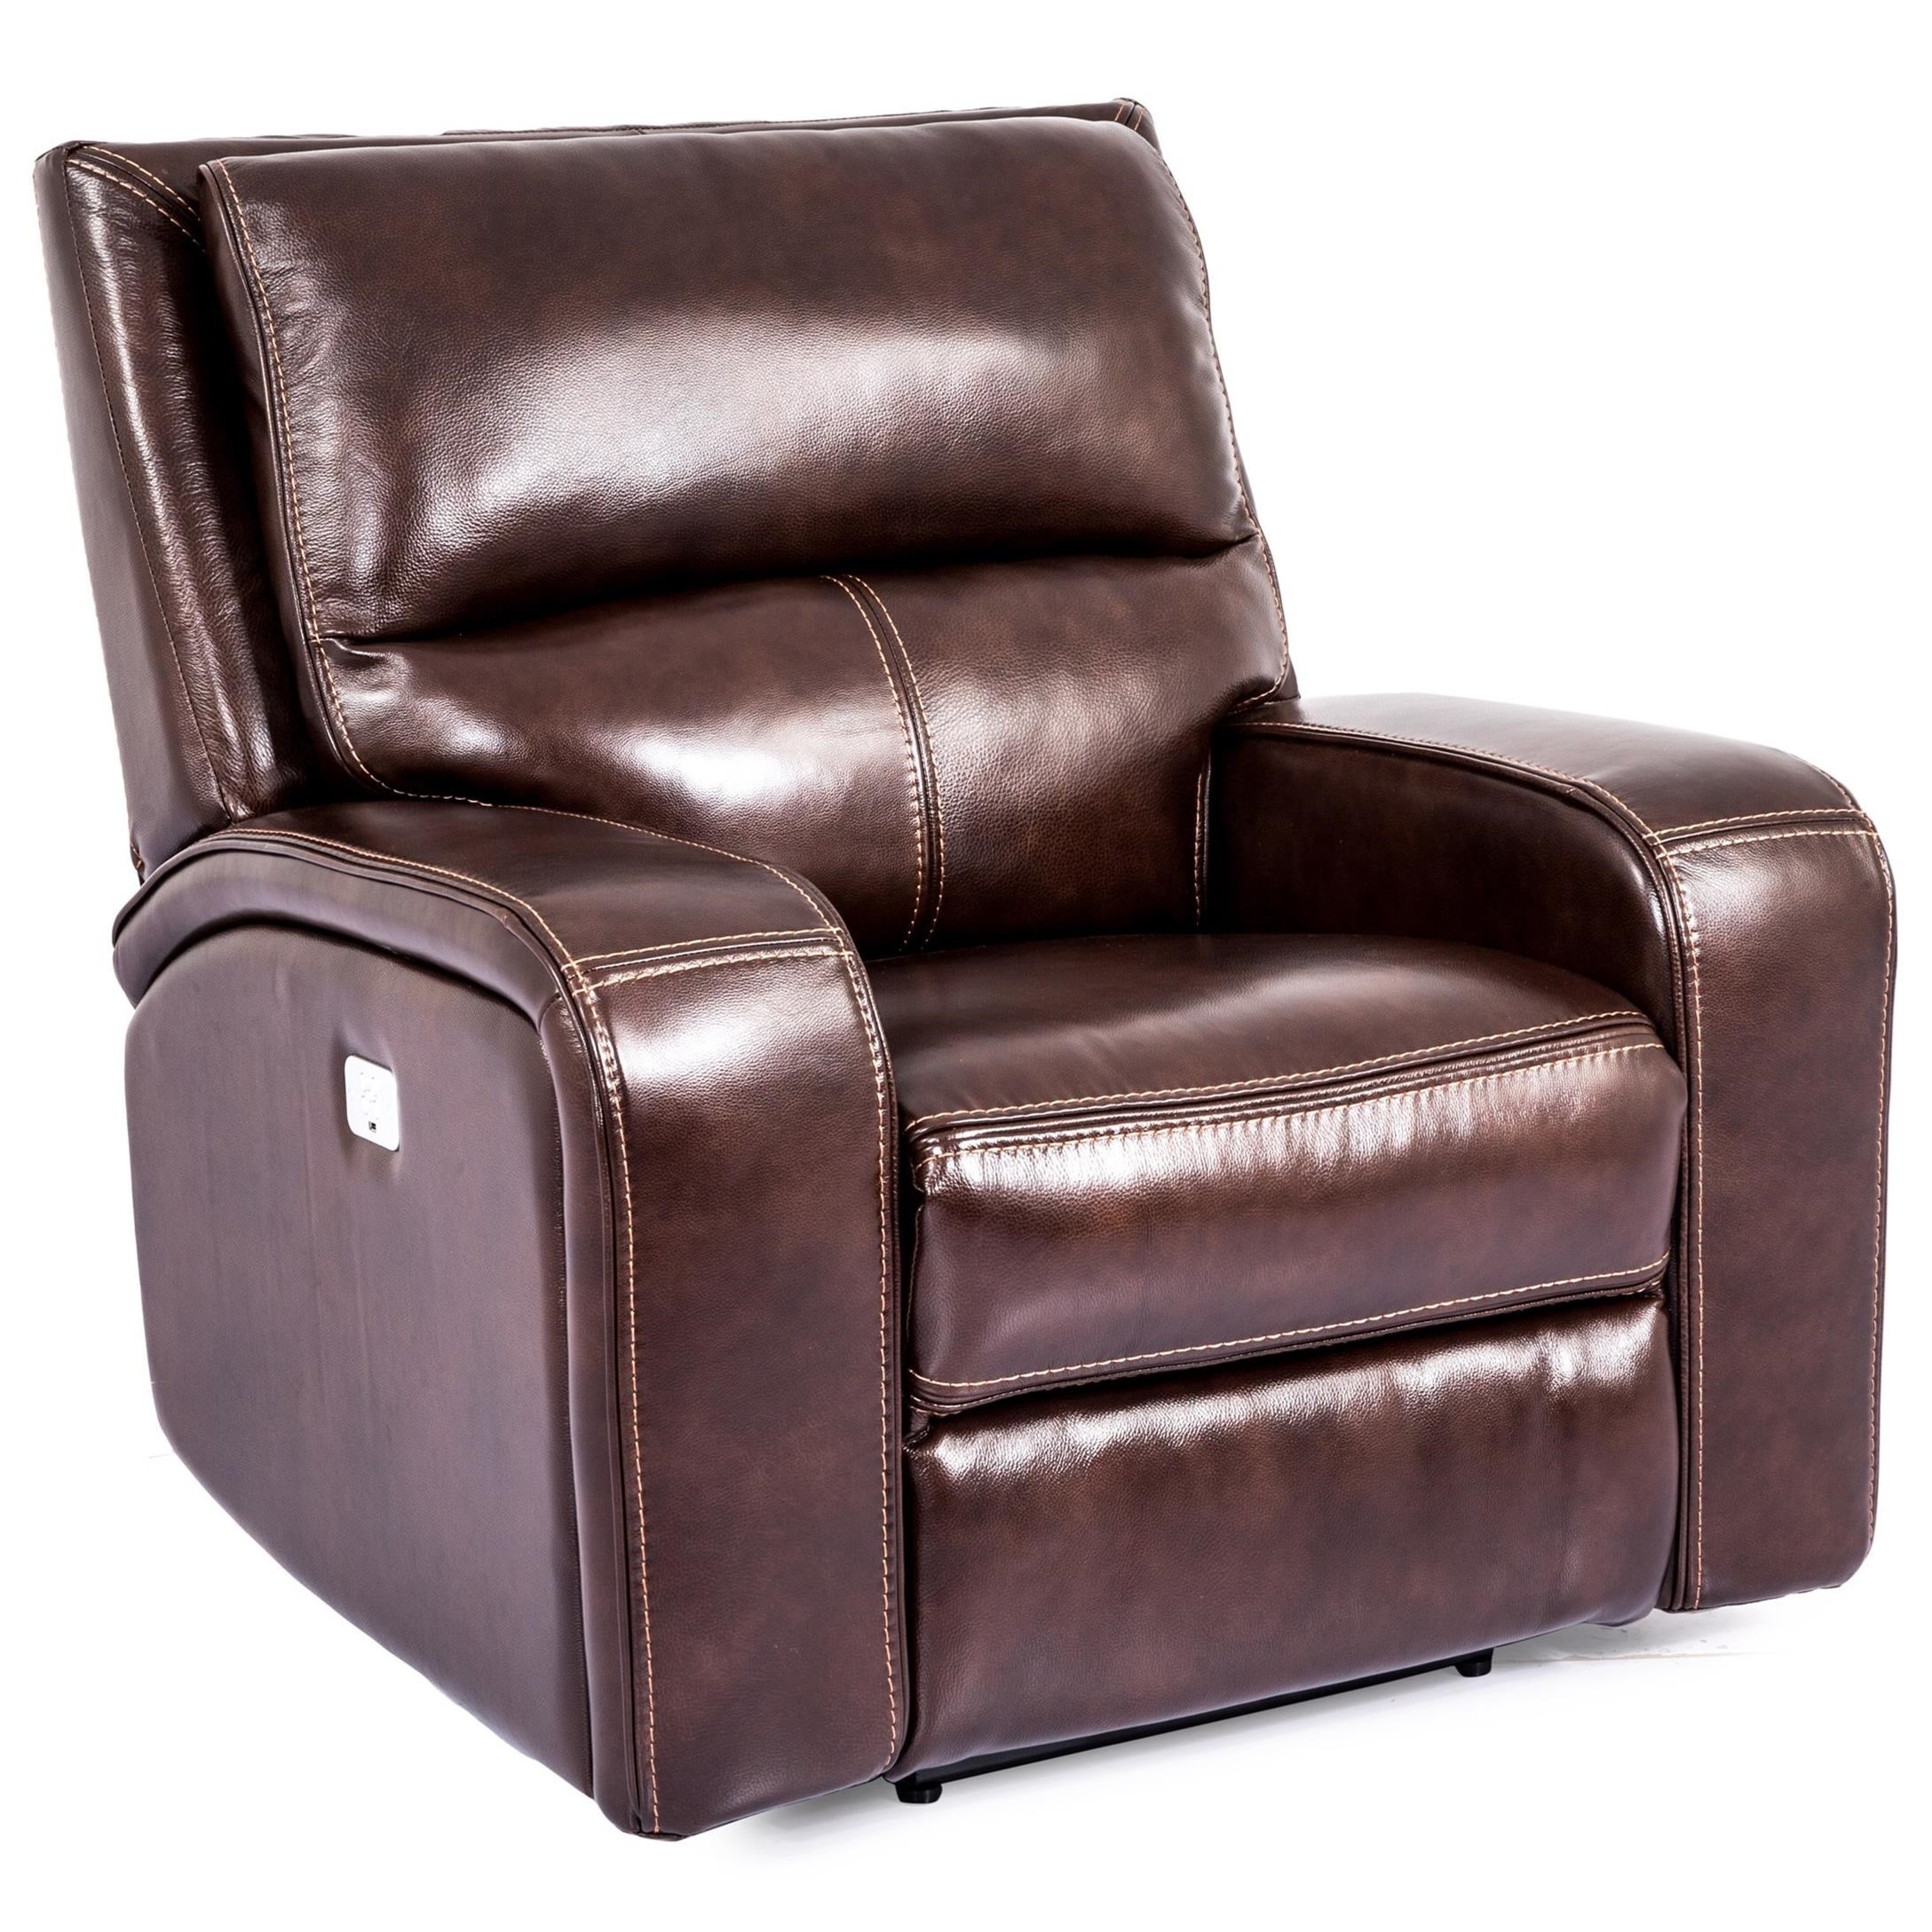 5168HM Power Recliner by Cheers at Beck's Furniture